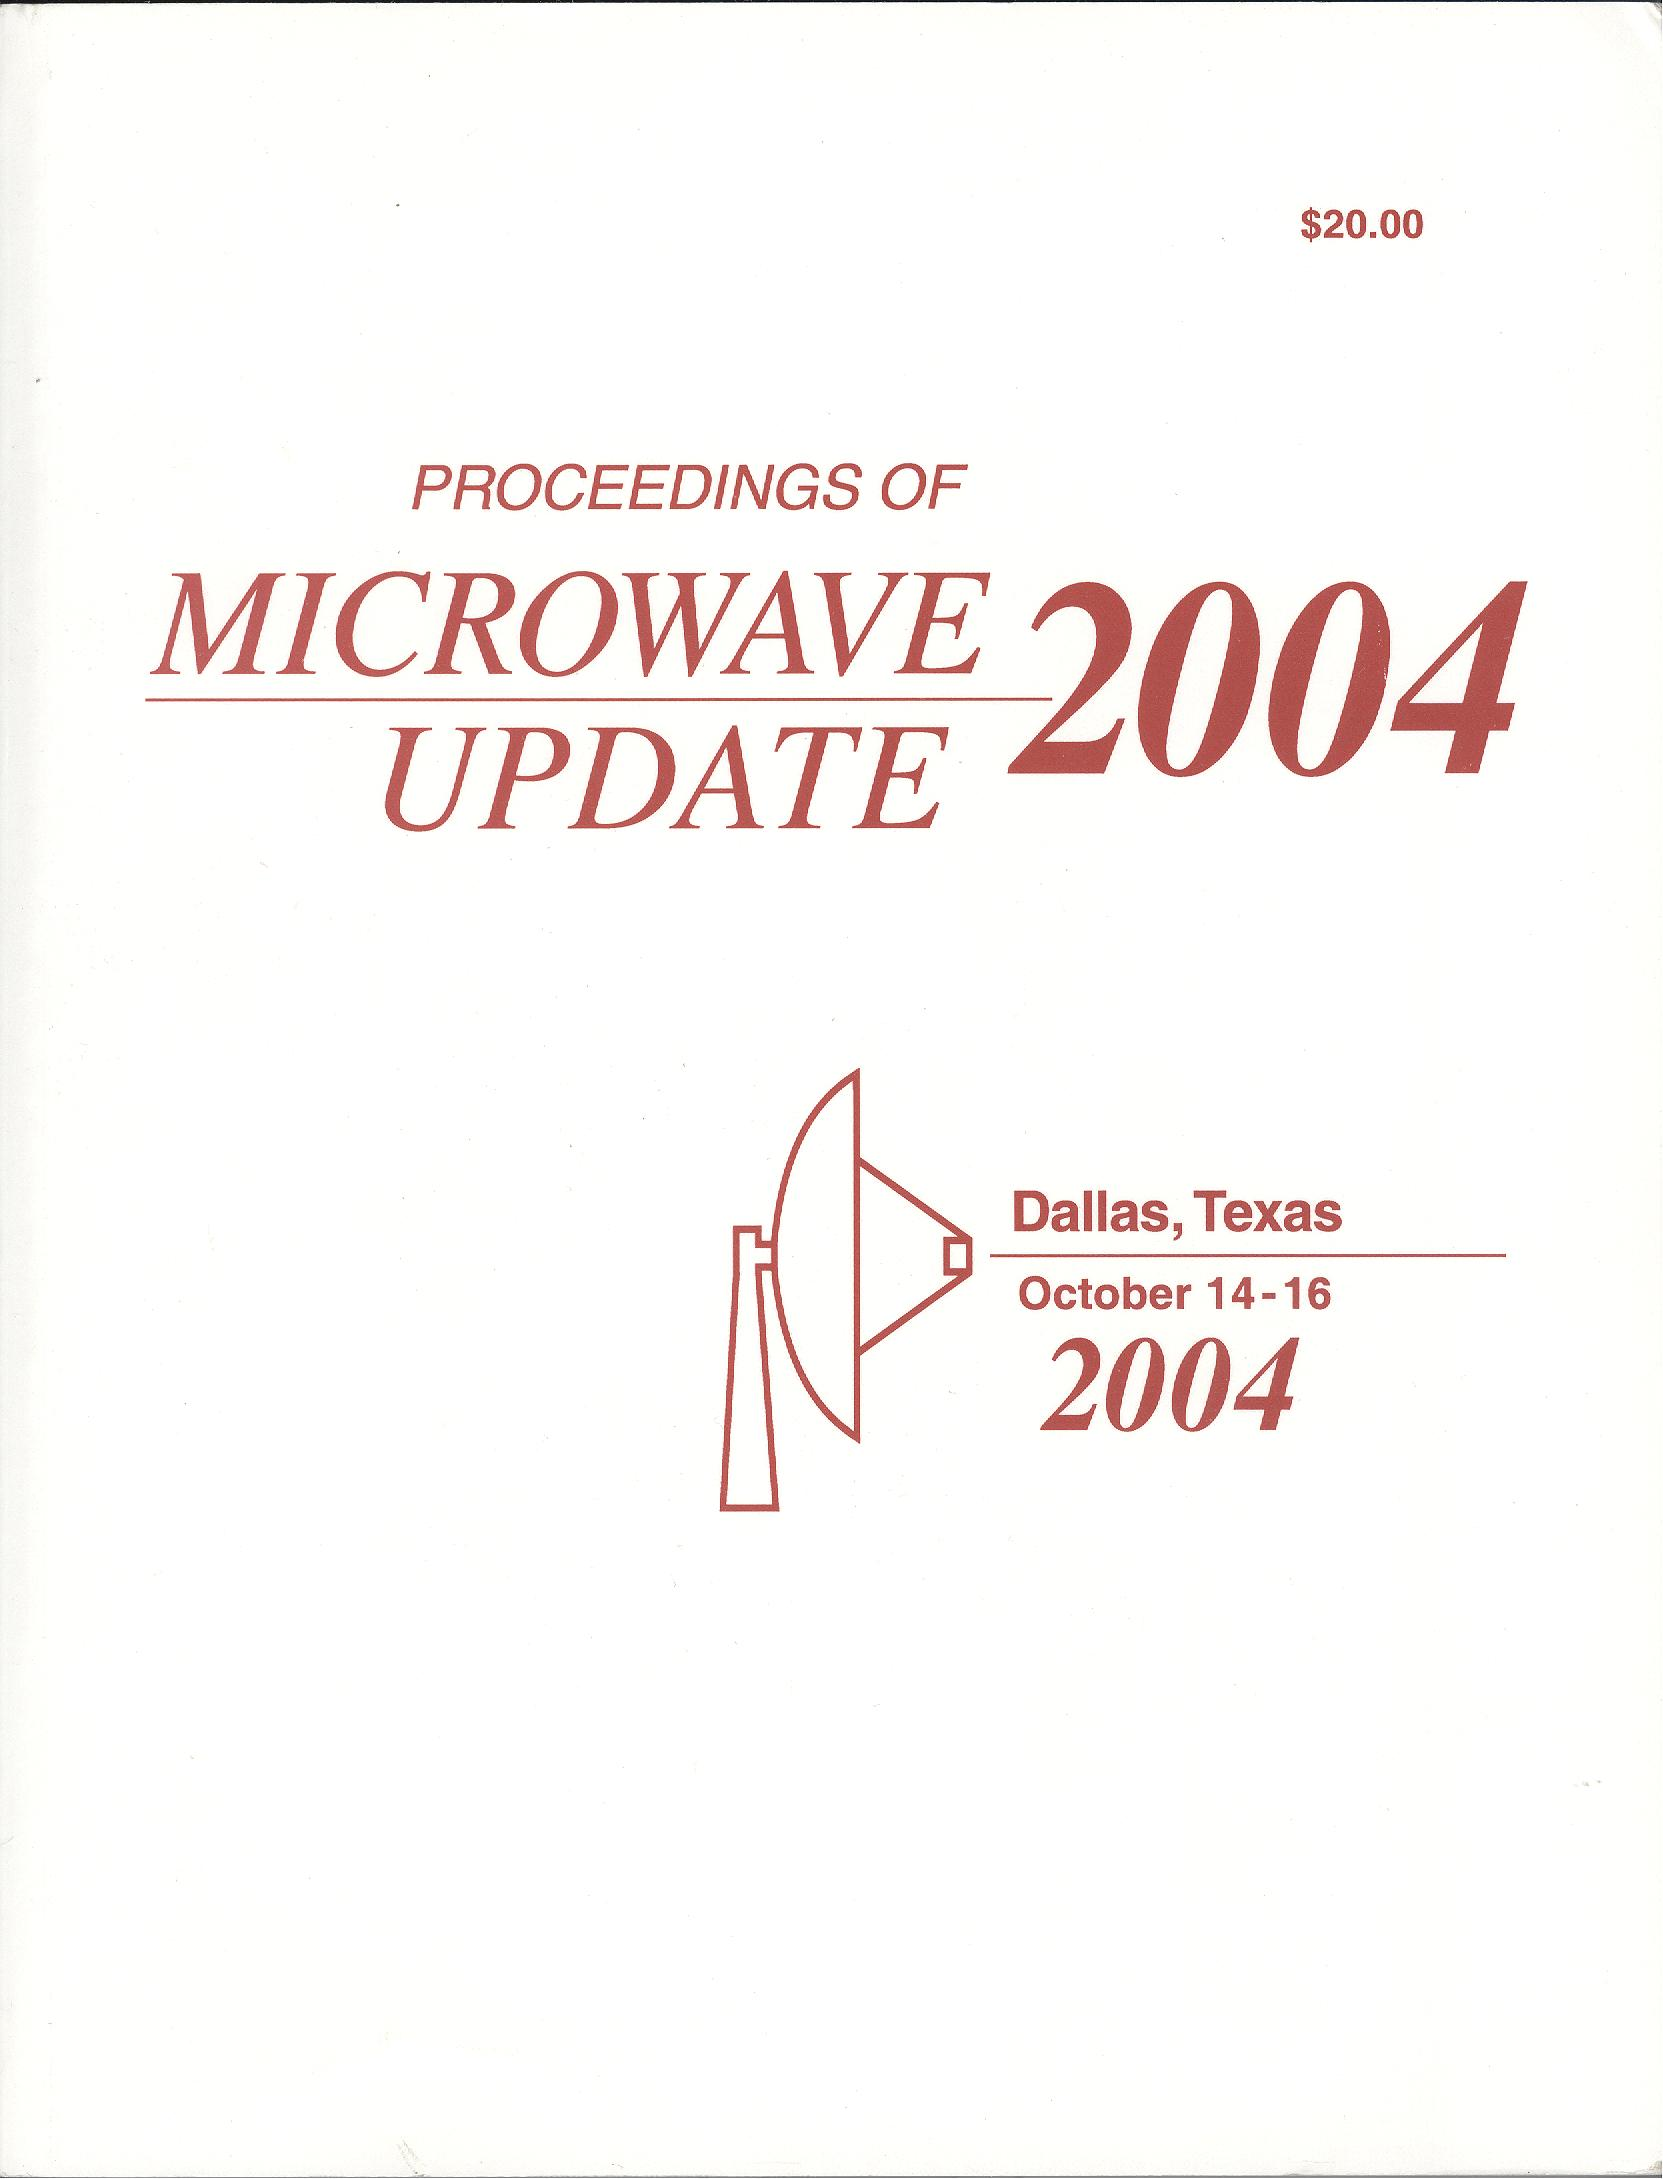 Proceedings of Microwave Update 2004